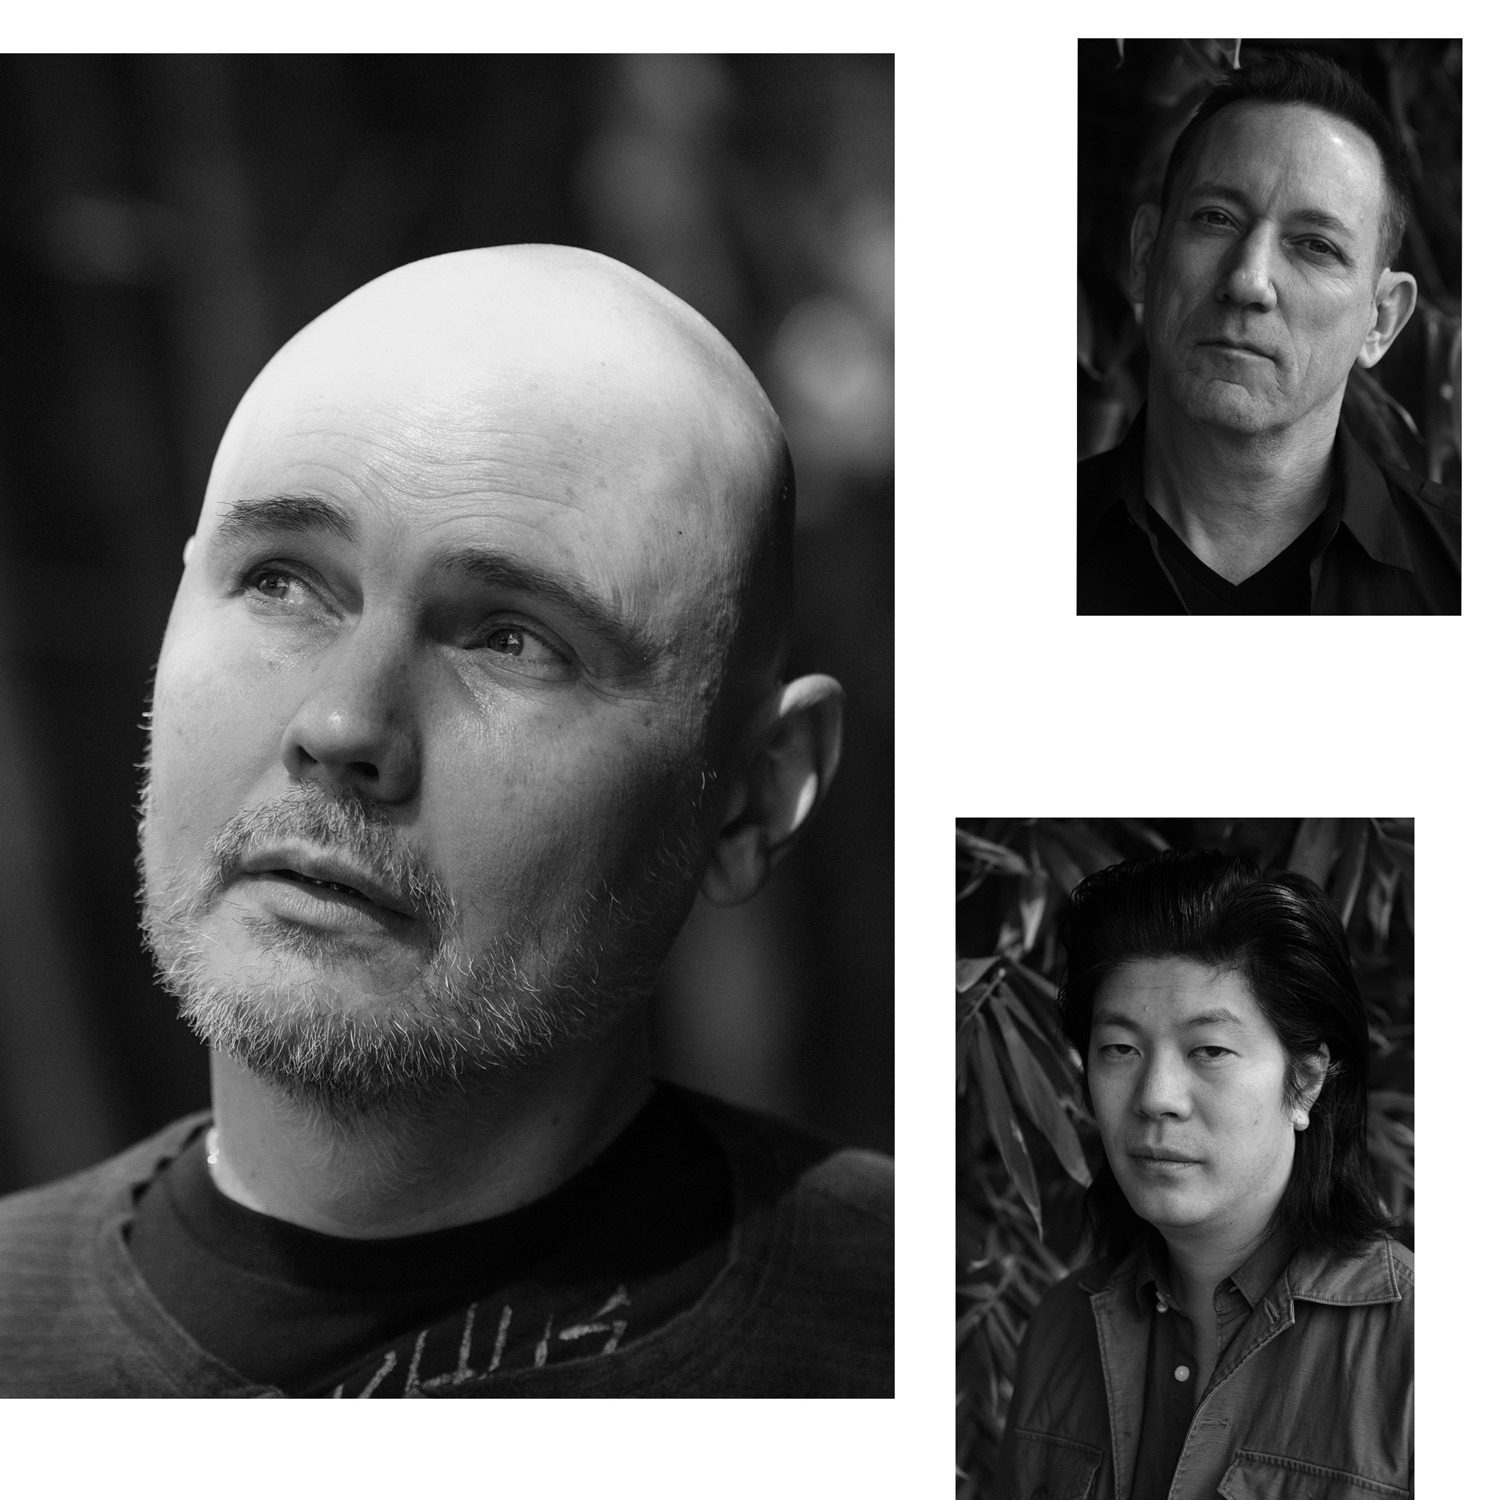 Smashing Pumpkins | The New York Times